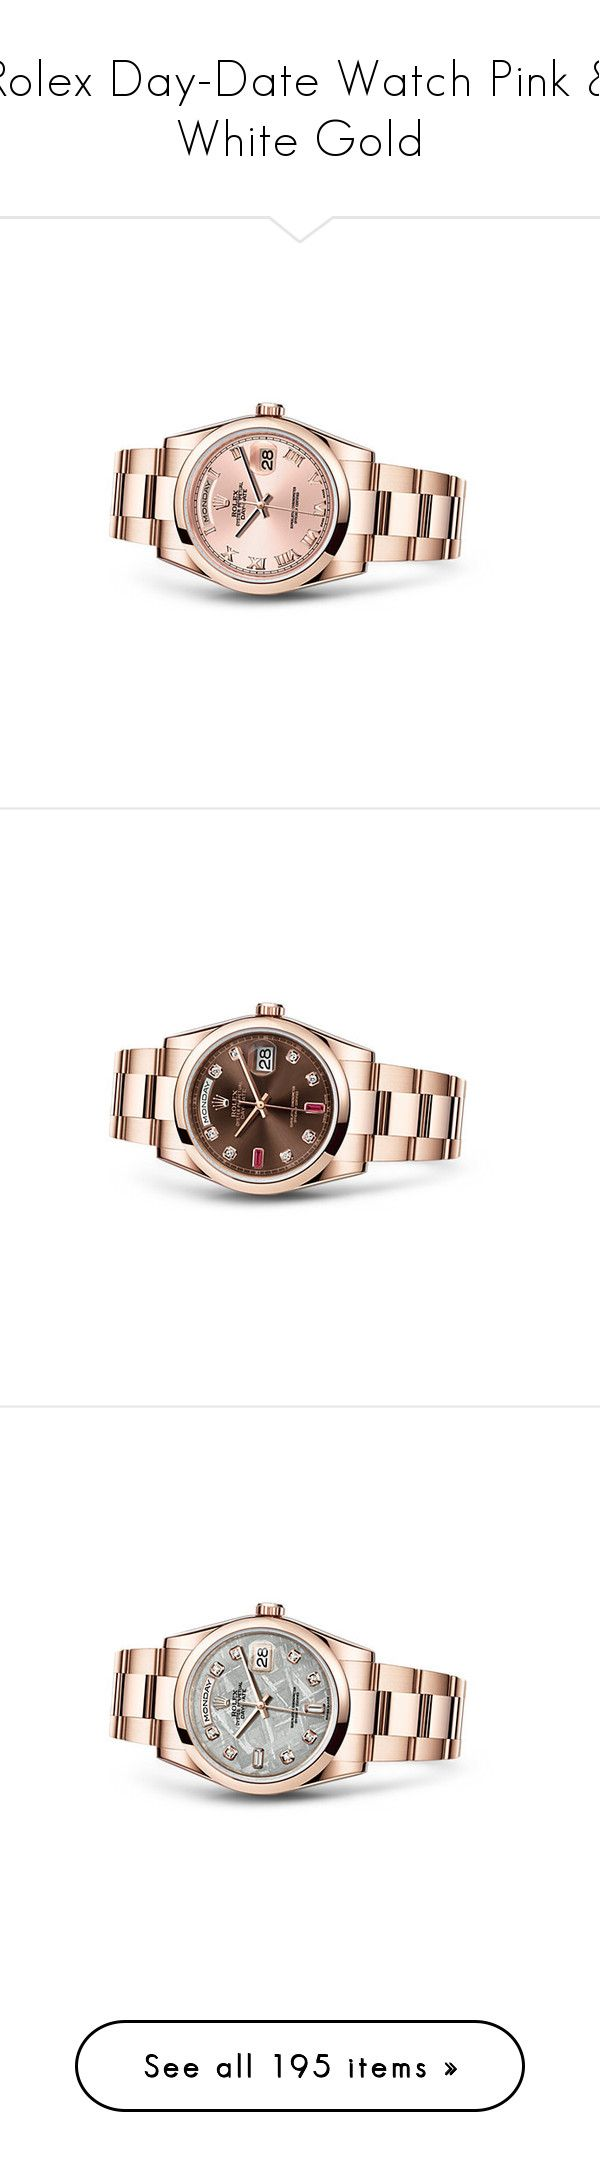 """Rolex Day-Date Watch Pink & White Gold"" by karalaska ❤ liked on Polyvore featuring jewelry, watches, rolex, rolex wrist watch, rolex watches, rolex jewelry, white gold jewellery and white gold jewelry"